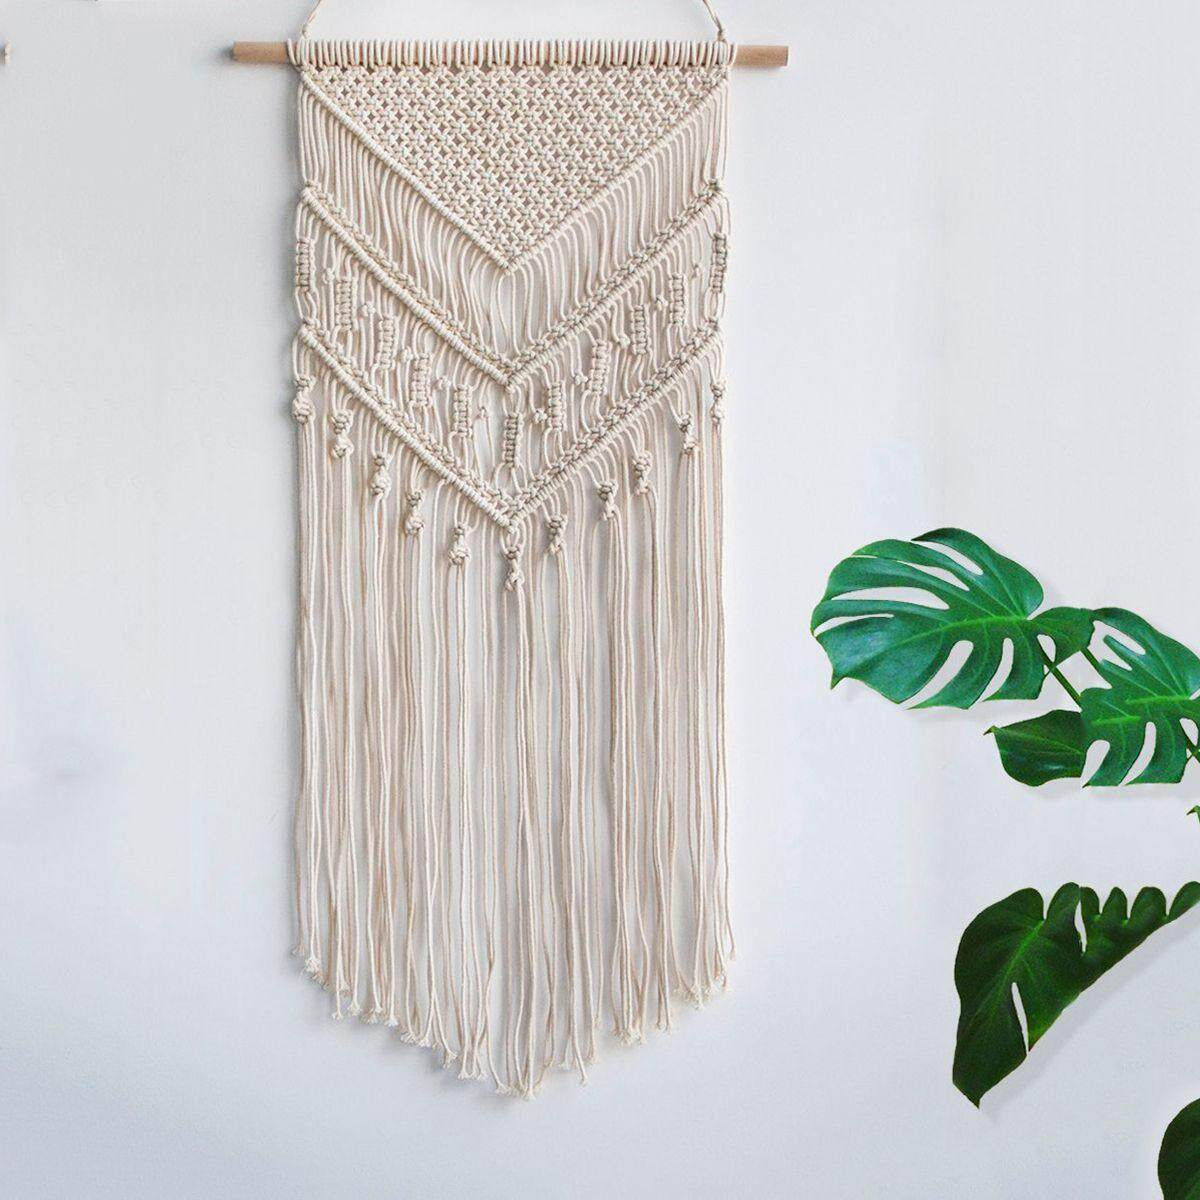 Macrame Woven Wall Hanging Boho Chic Bohemian Home Geometric Art Decor Beautiful Apartment Dorm Room Decoration Free Shipping